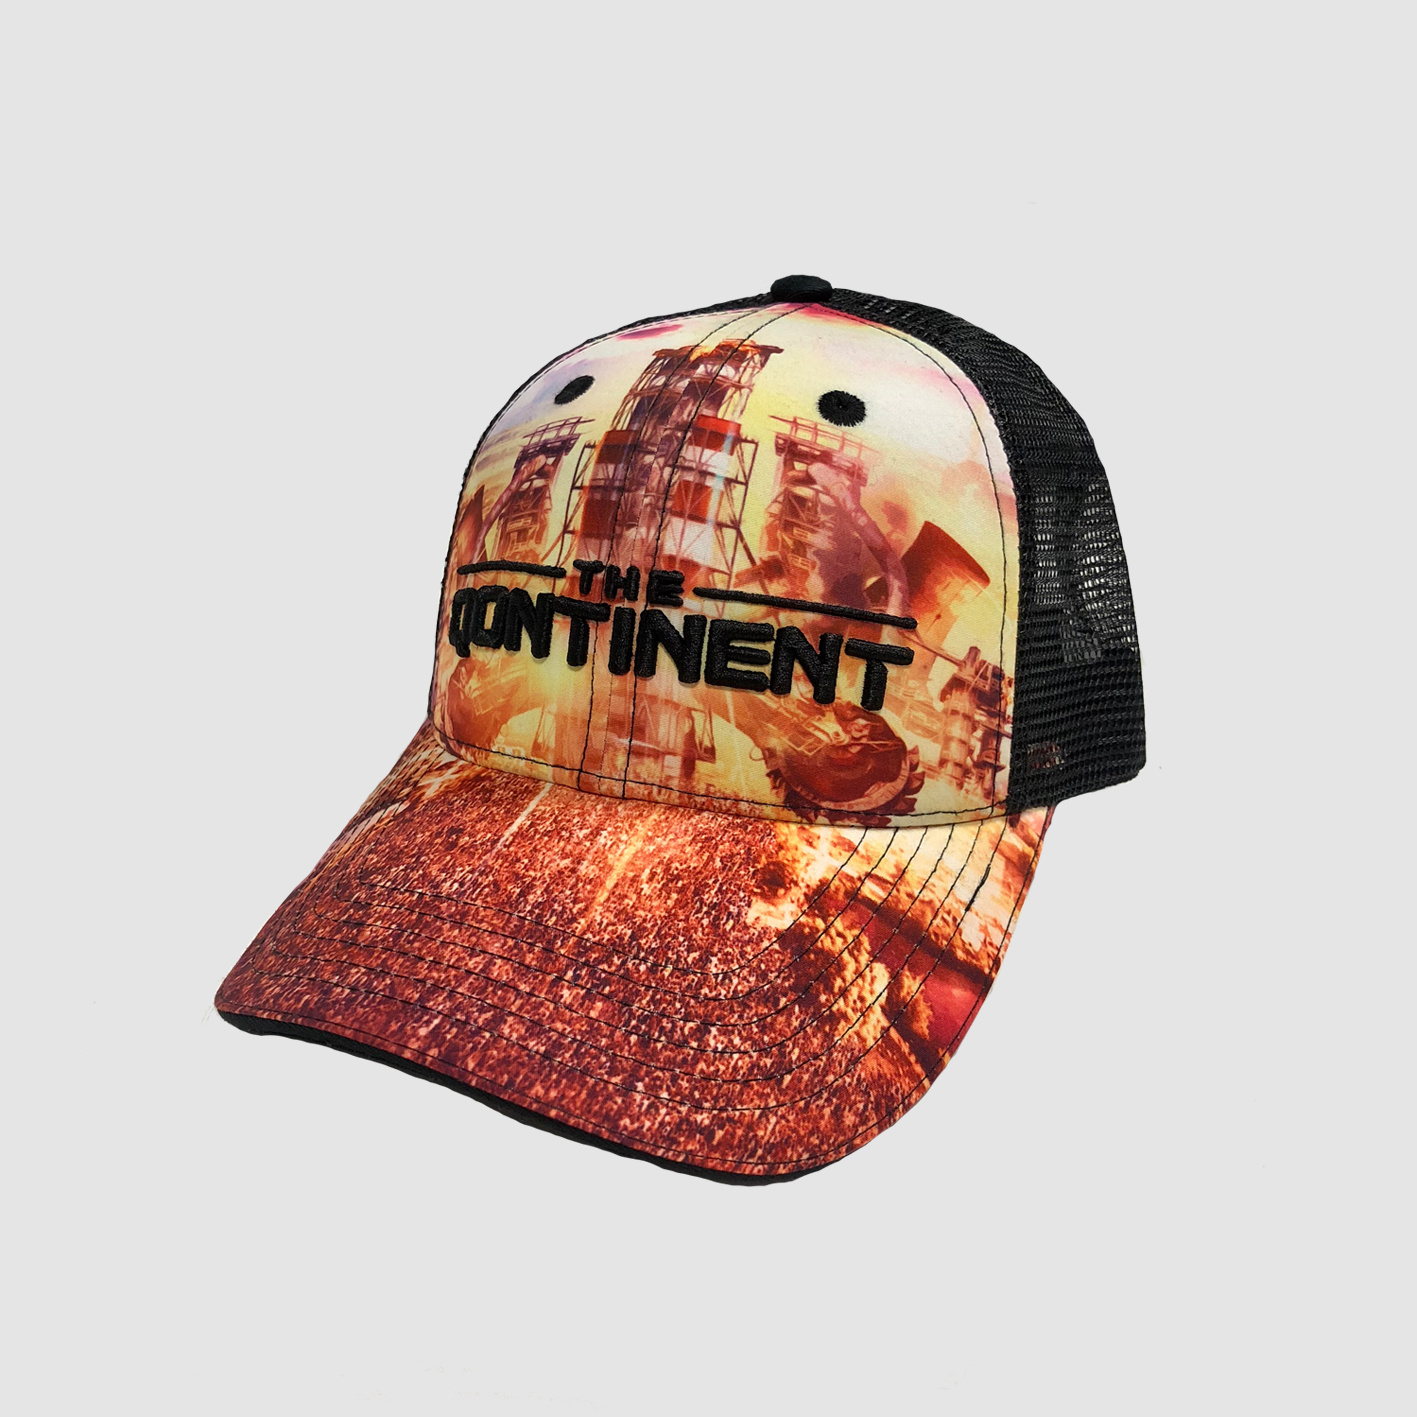 The Qontinent - Island Of Intensity Truckercap